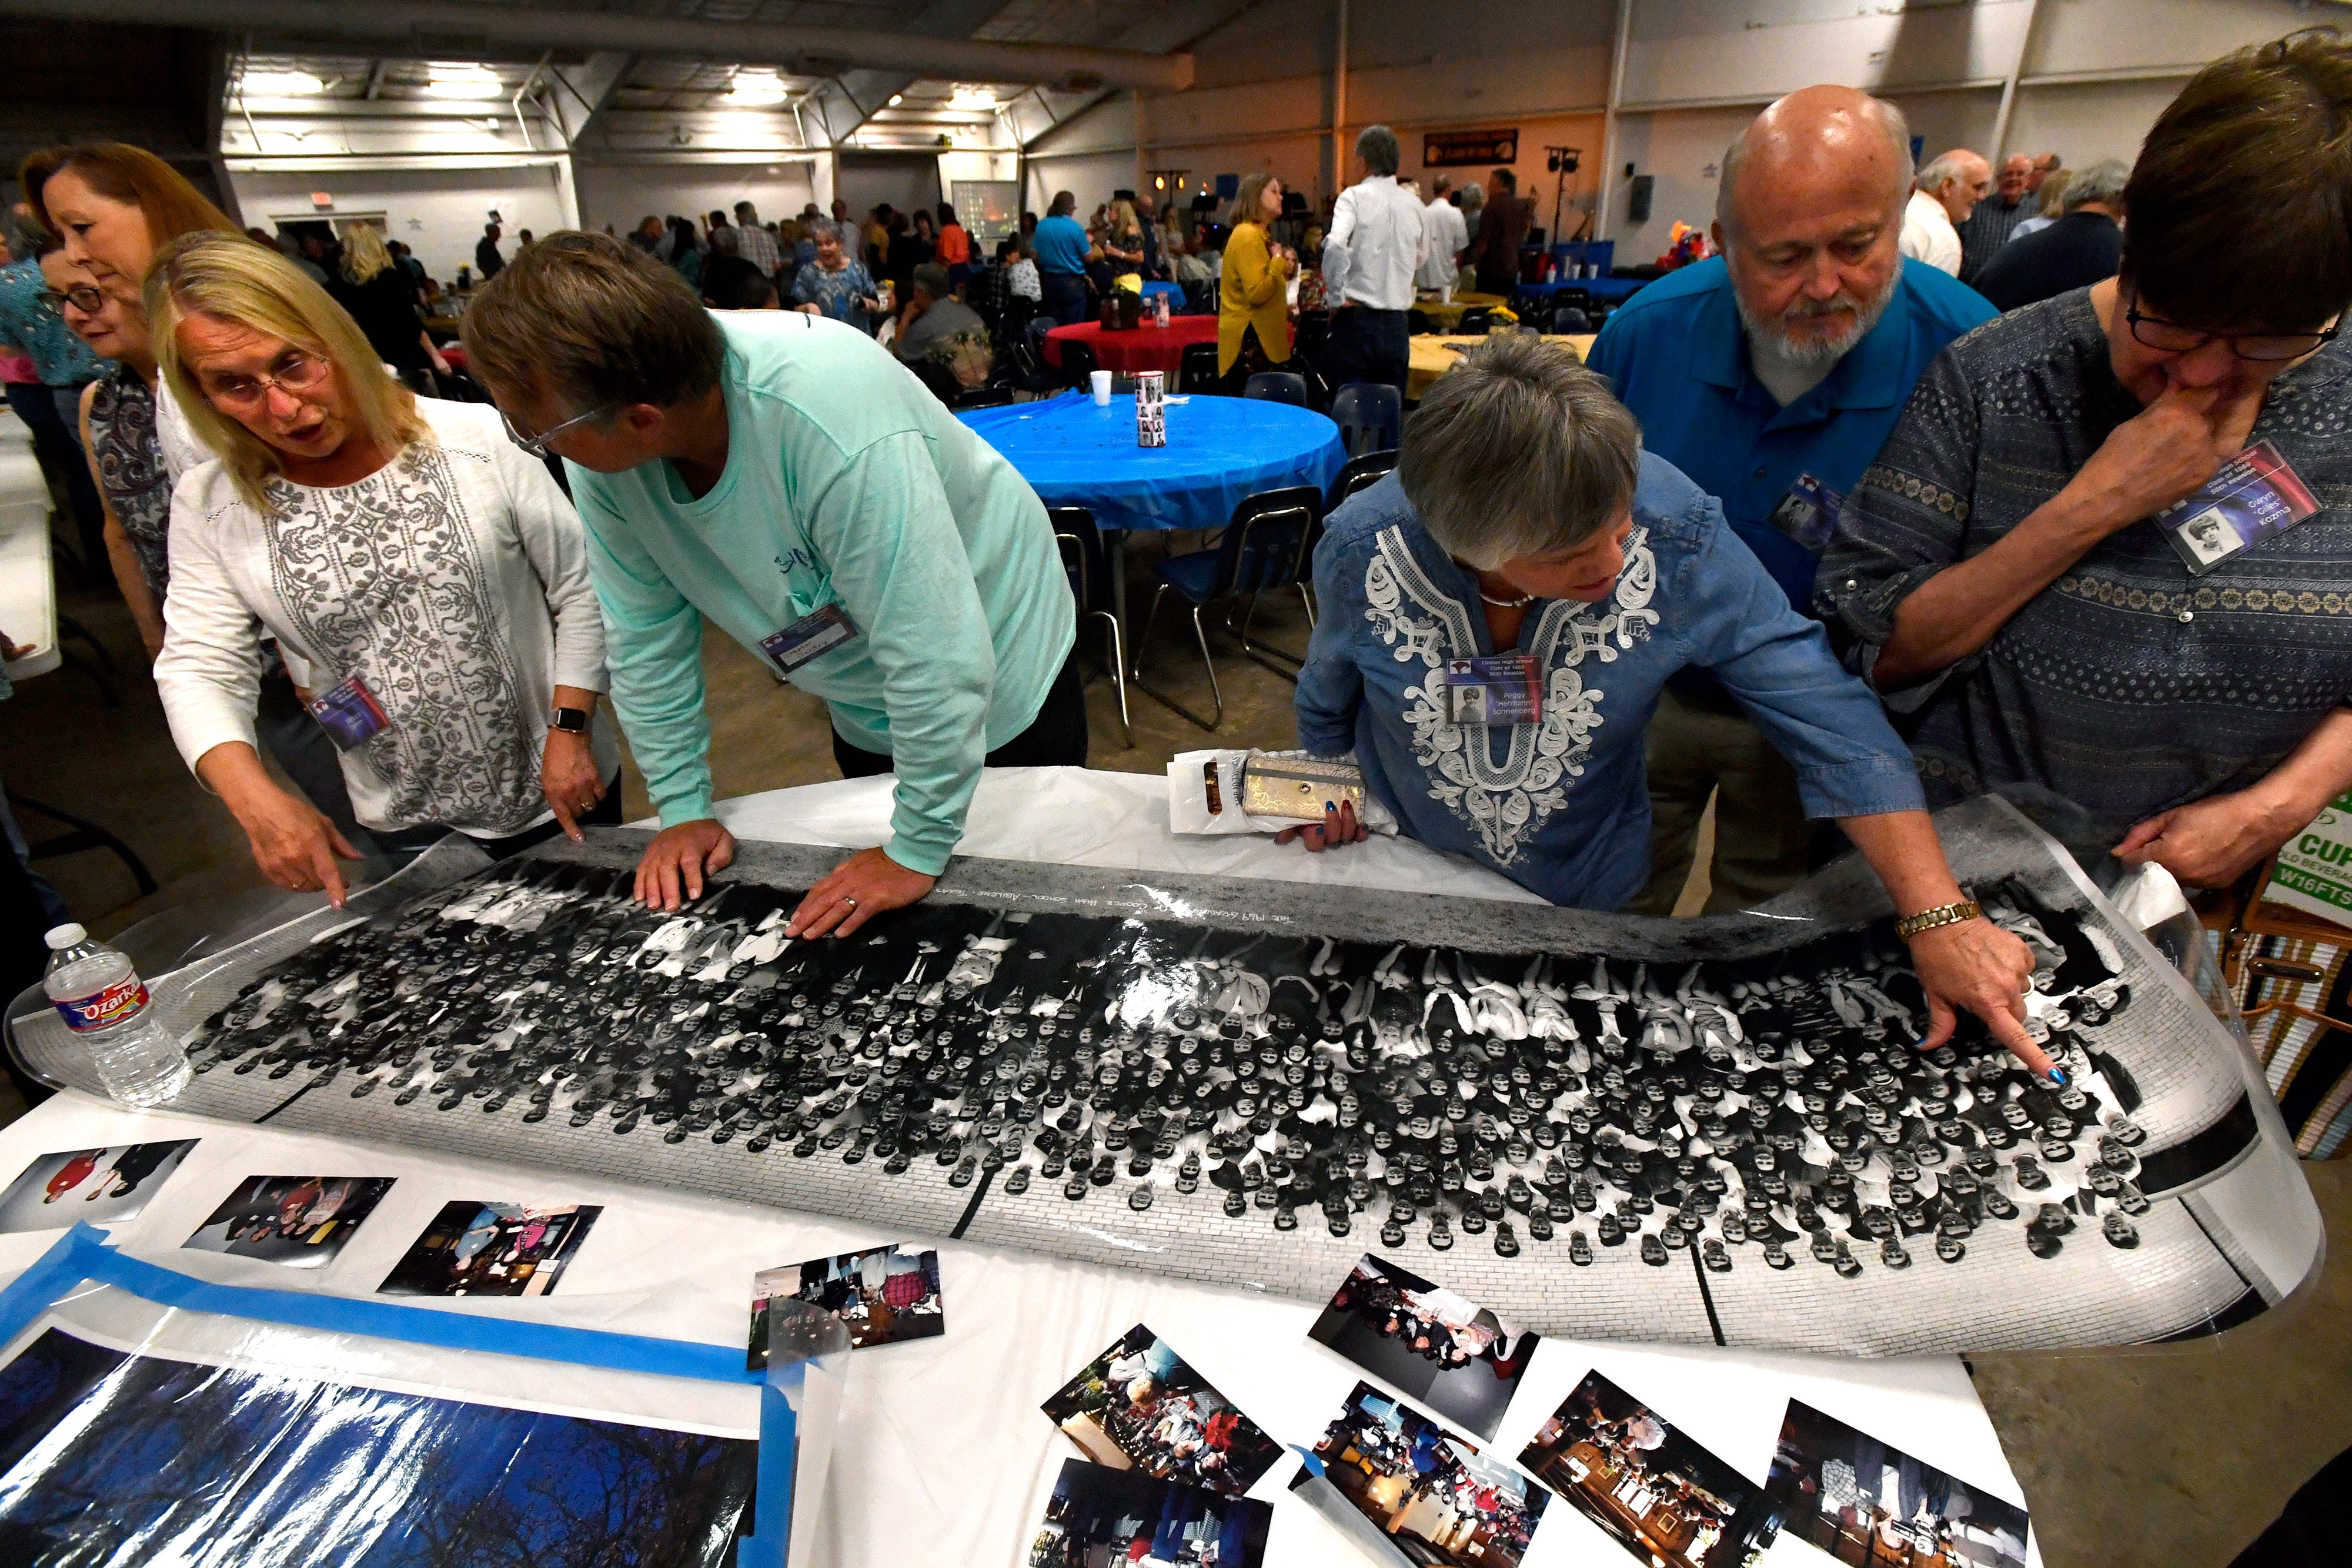 Attendees look over a class portrait of the Cooper High School Class of 1969 during Friday's reunion of Cooper and Abilene high schools from that year at the Taylor County Expo Center.